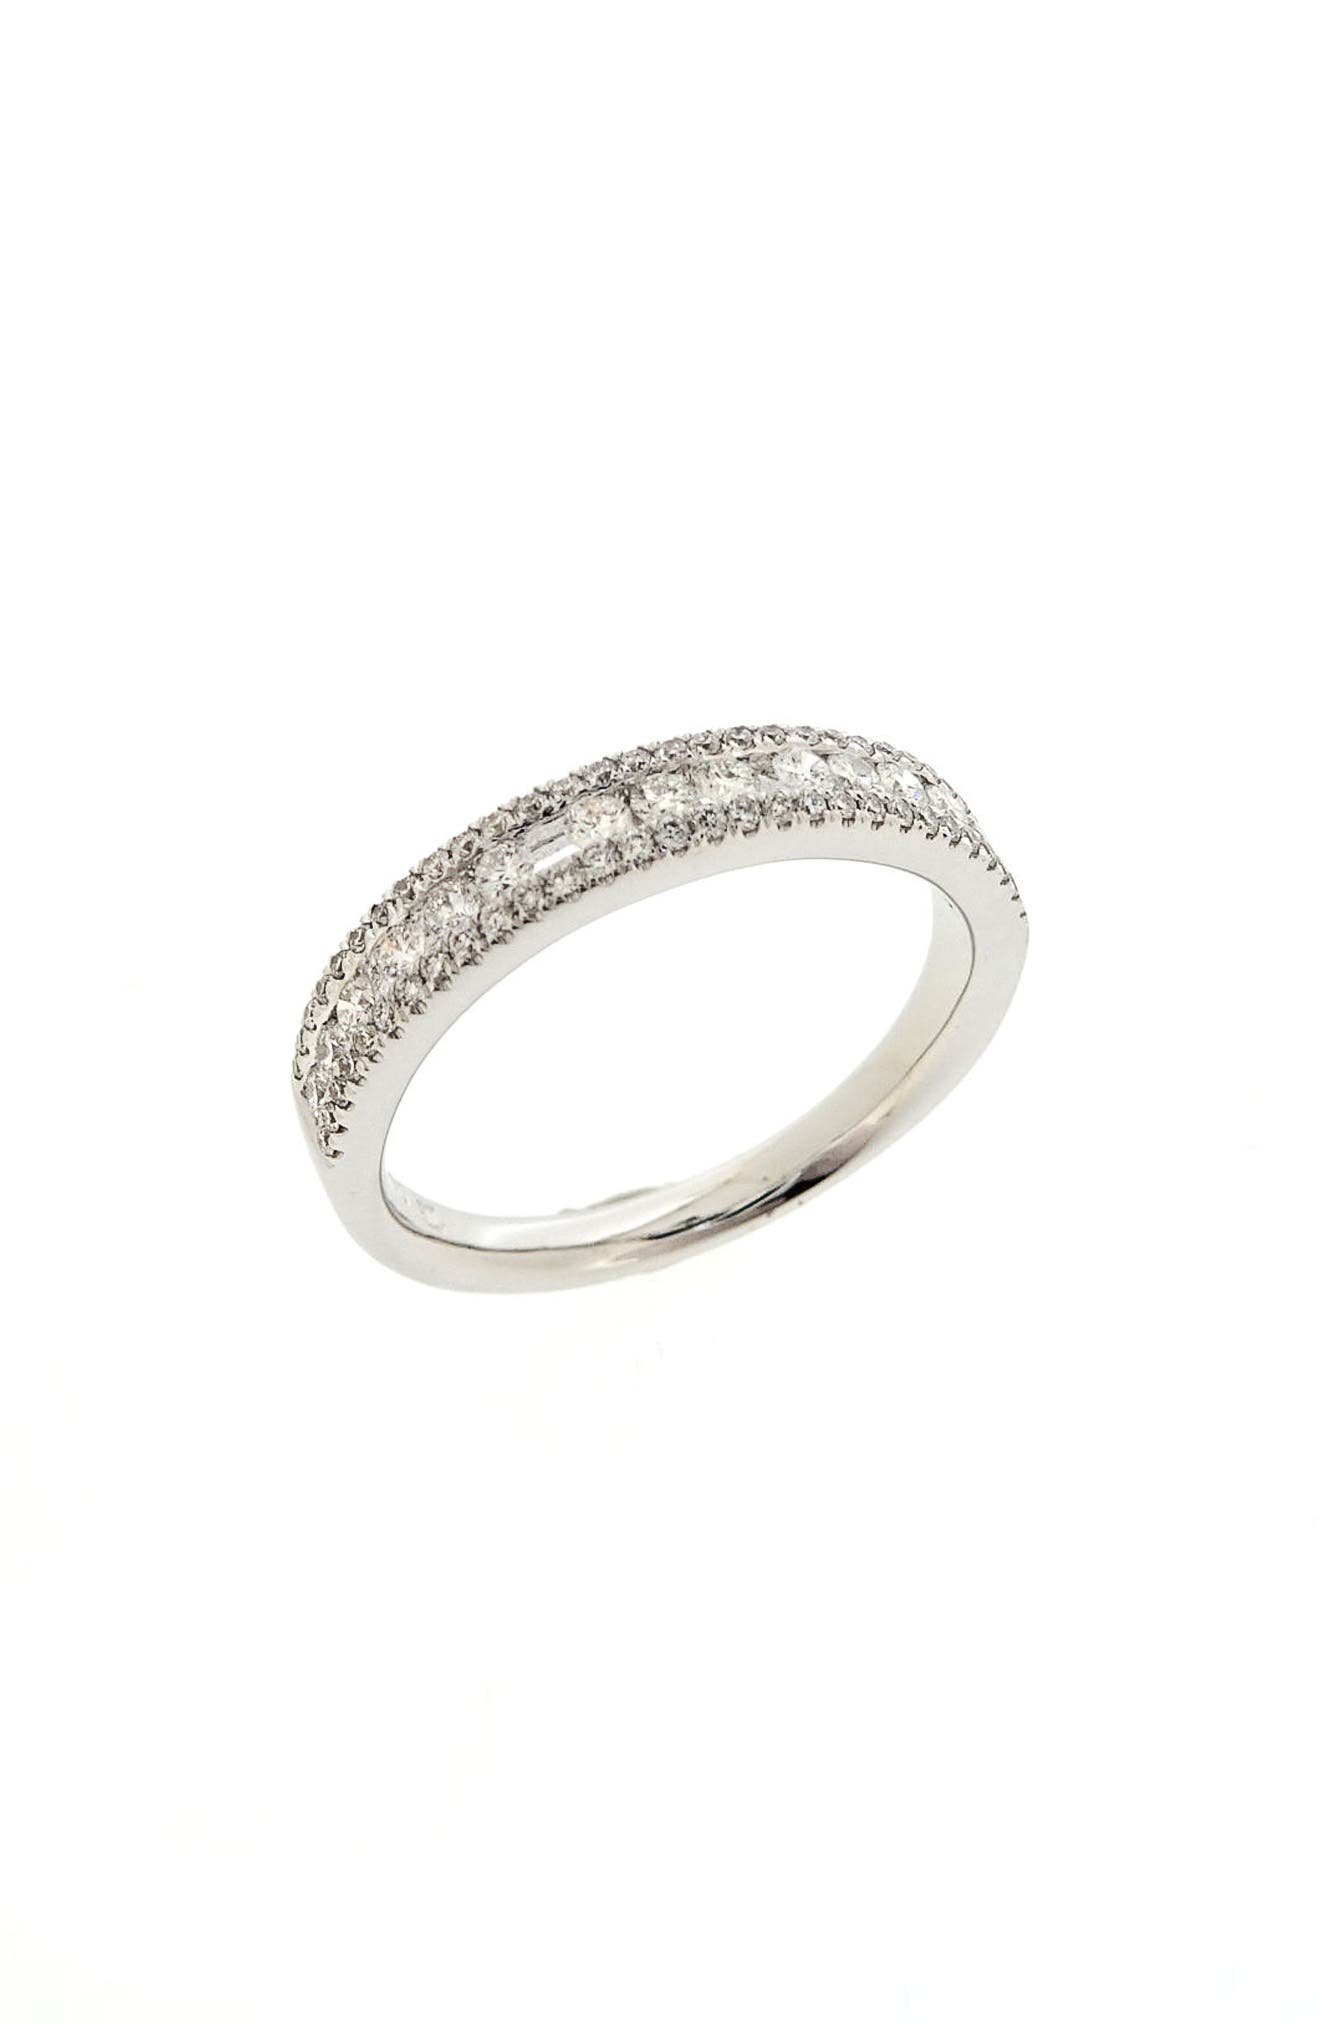 Amara Luxe Stackable Diamond Ring,                             Main thumbnail 1, color,                             711